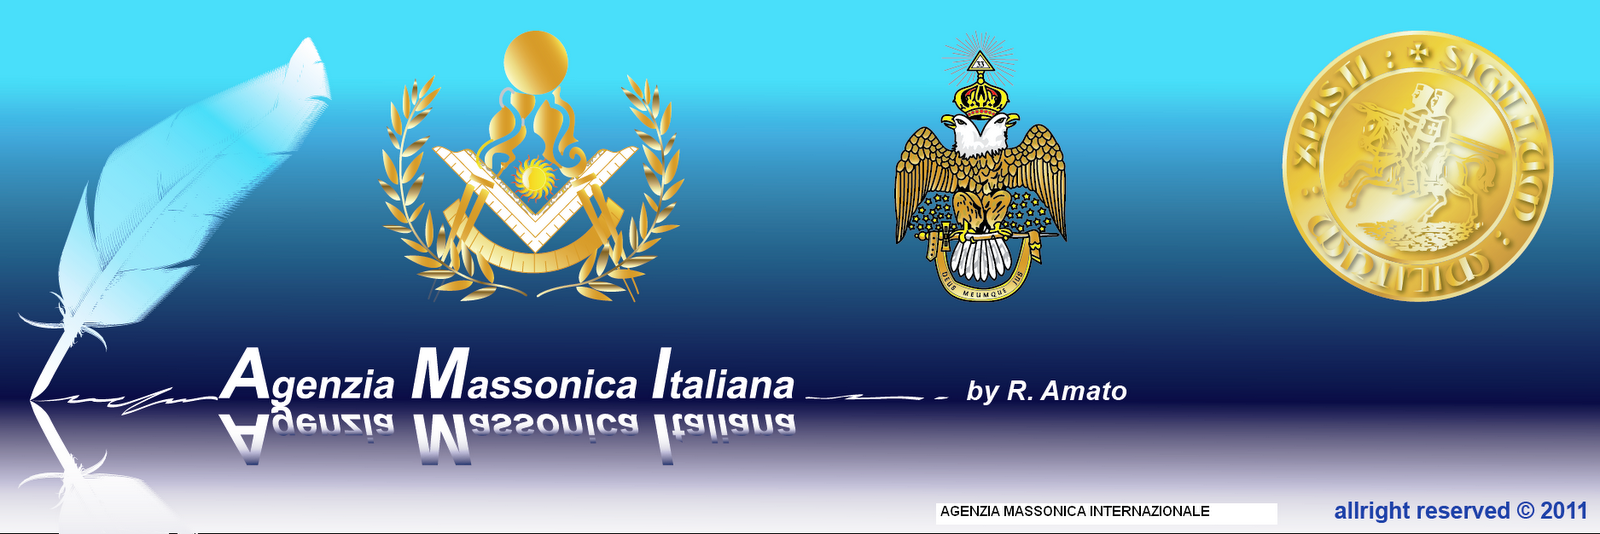 Agenzia Massonica Italiana AMI- News of the world